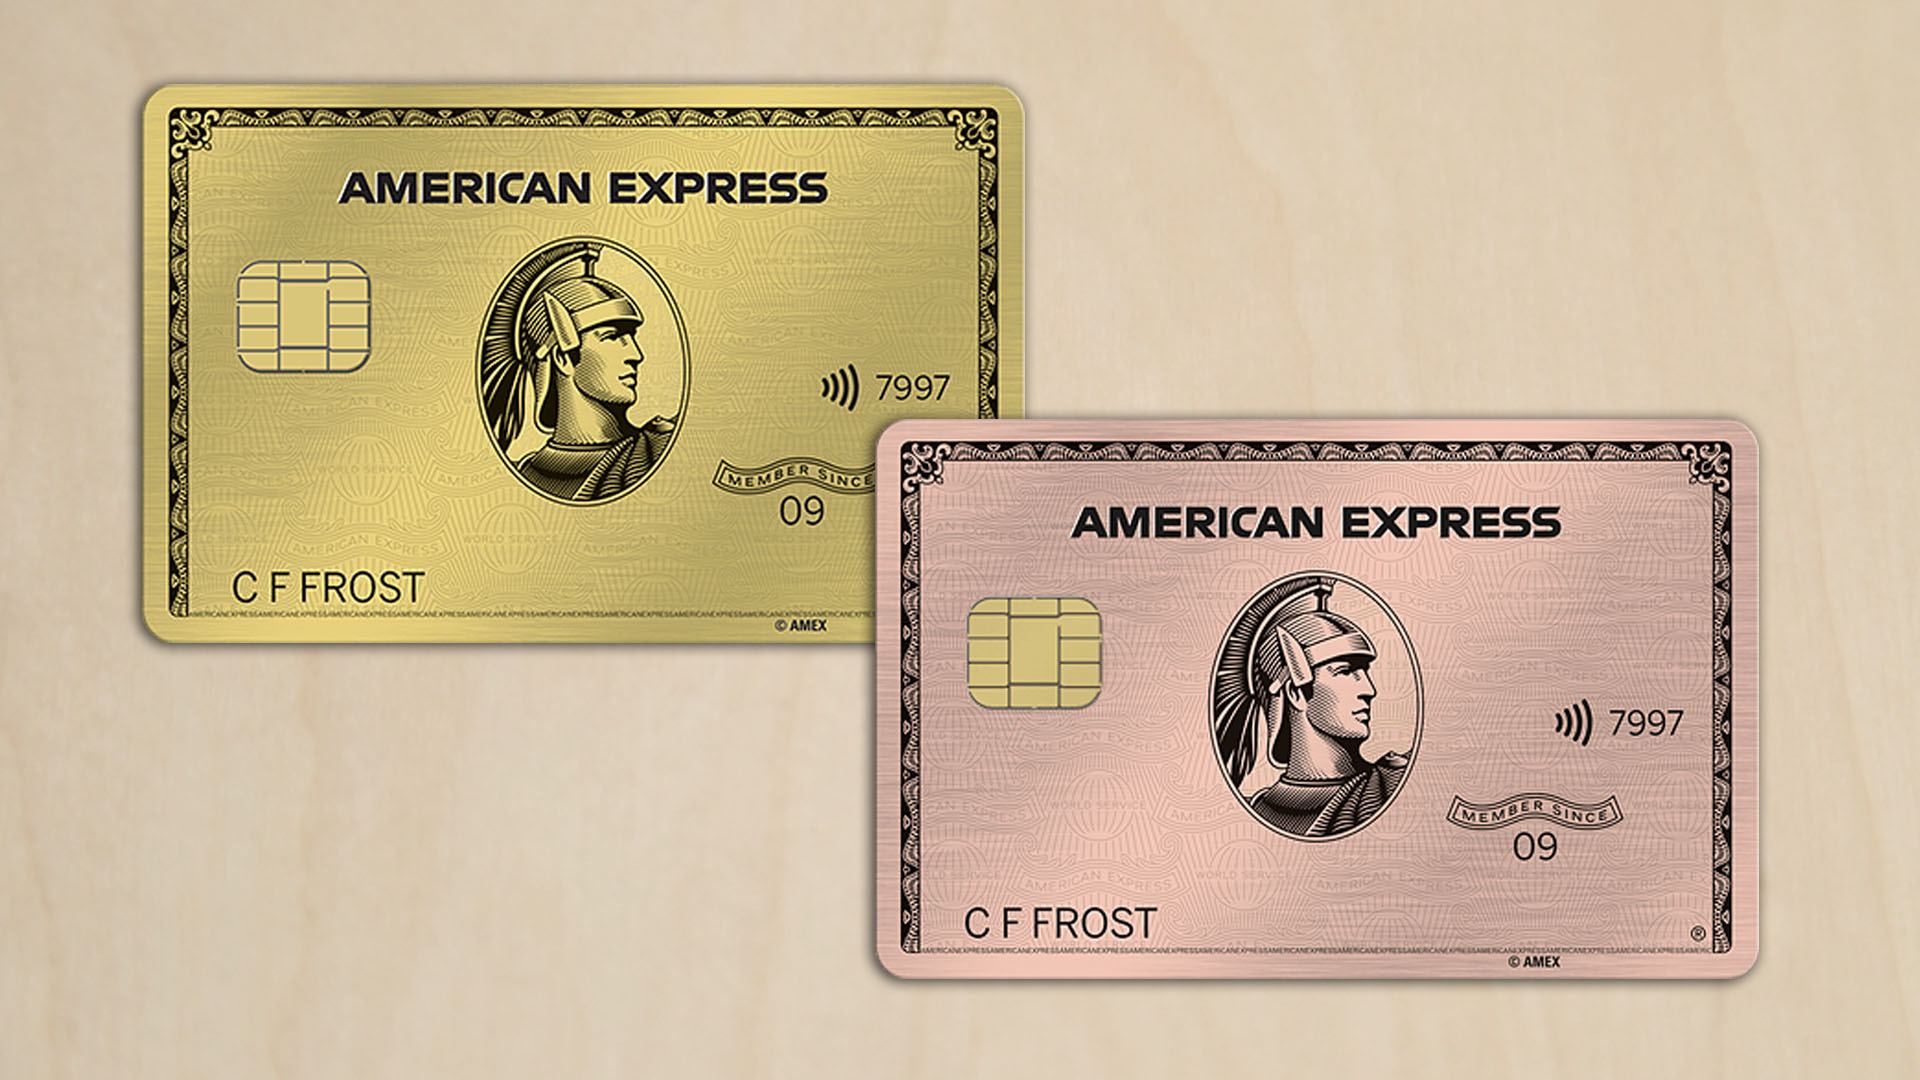 Gold versus Platinum Amex Card: What's the Difference?